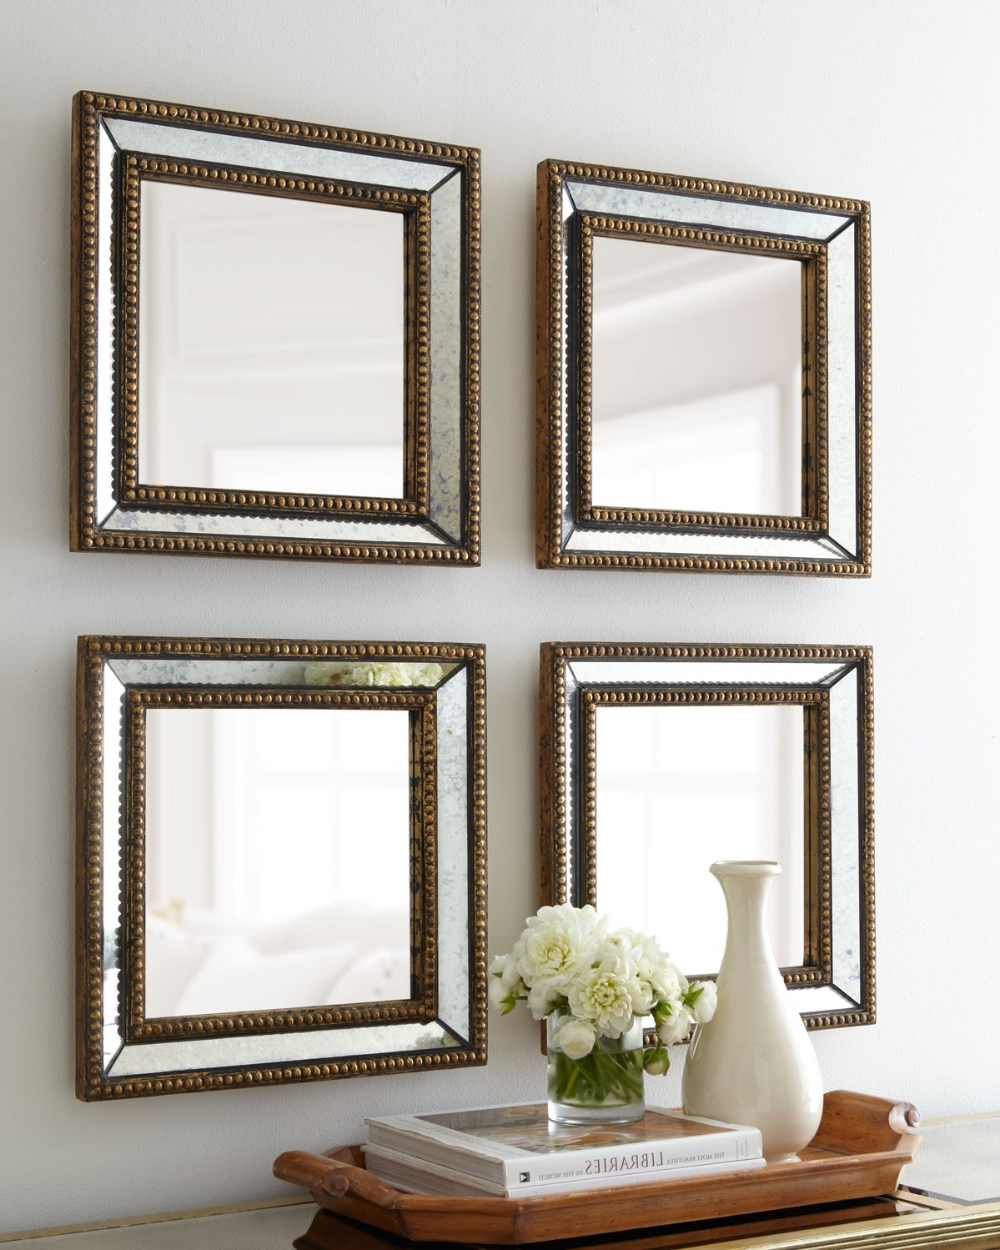 Well Known Cheap Decorative Wall Mirrors With Regard To Beaded Square Home Decor Wall Mirror, View Mirror, Guanding Product (View 20 of 20)